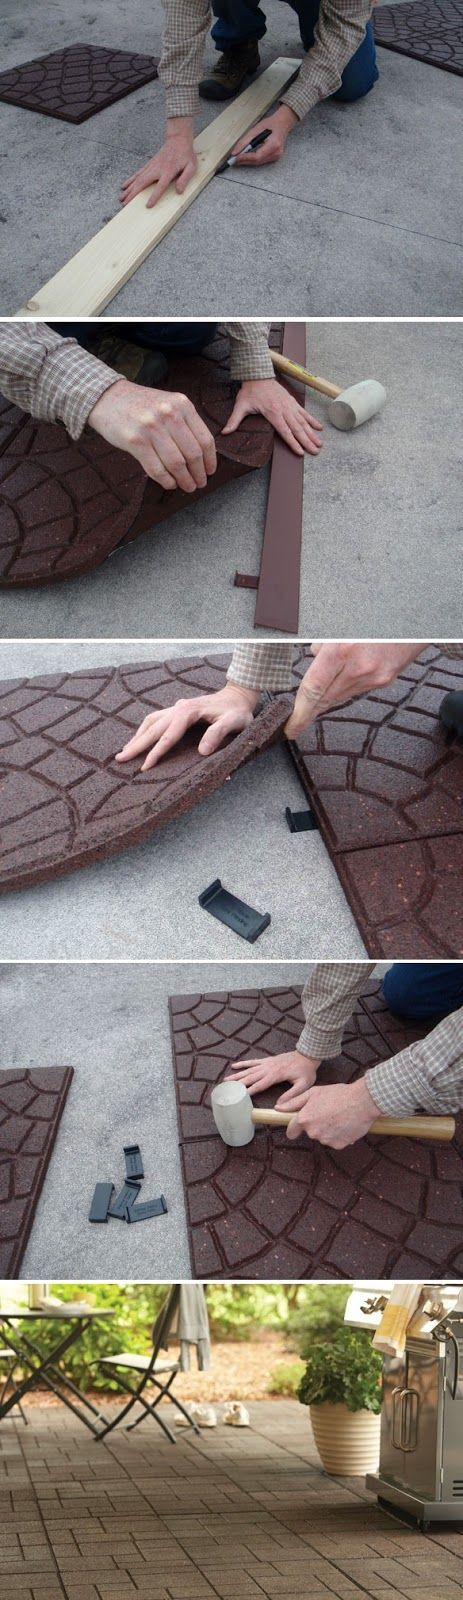 Decorative Patio Tiles Interesting How To Recover Your Patio With Envirotile  Diy Home Decor Decorating Design